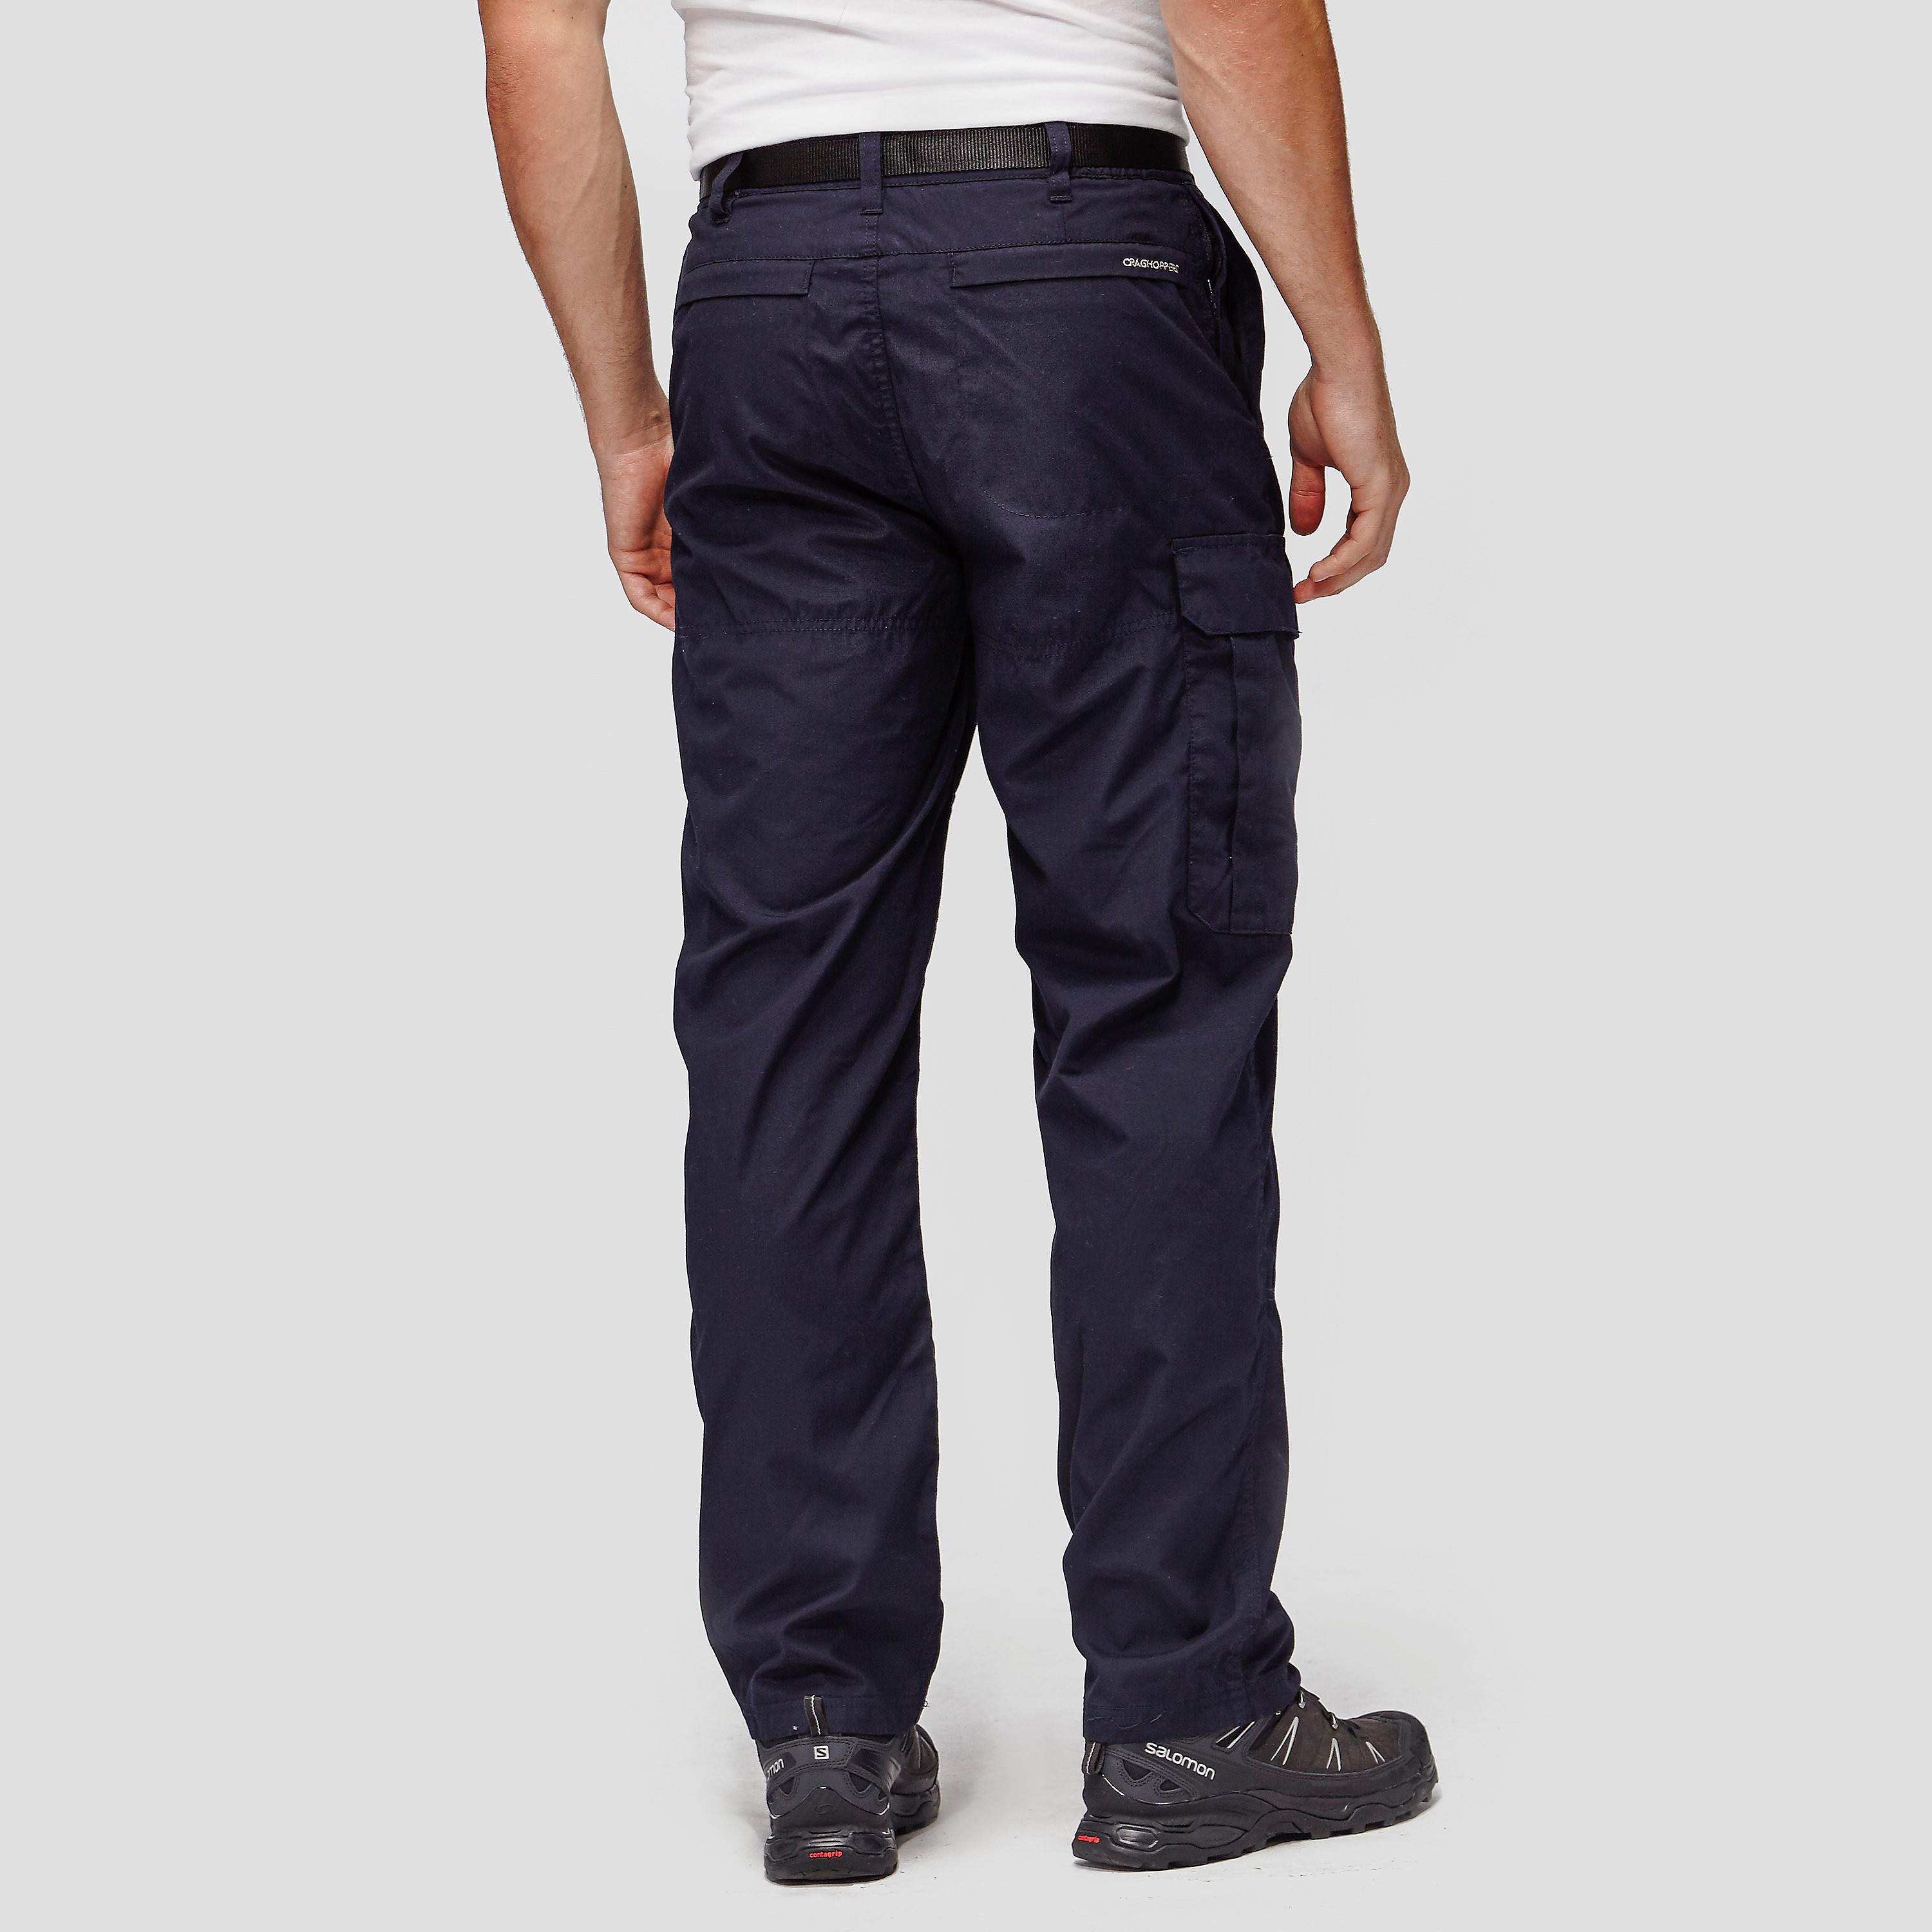 Craghoppers Classic Kiwi Men's Trousers